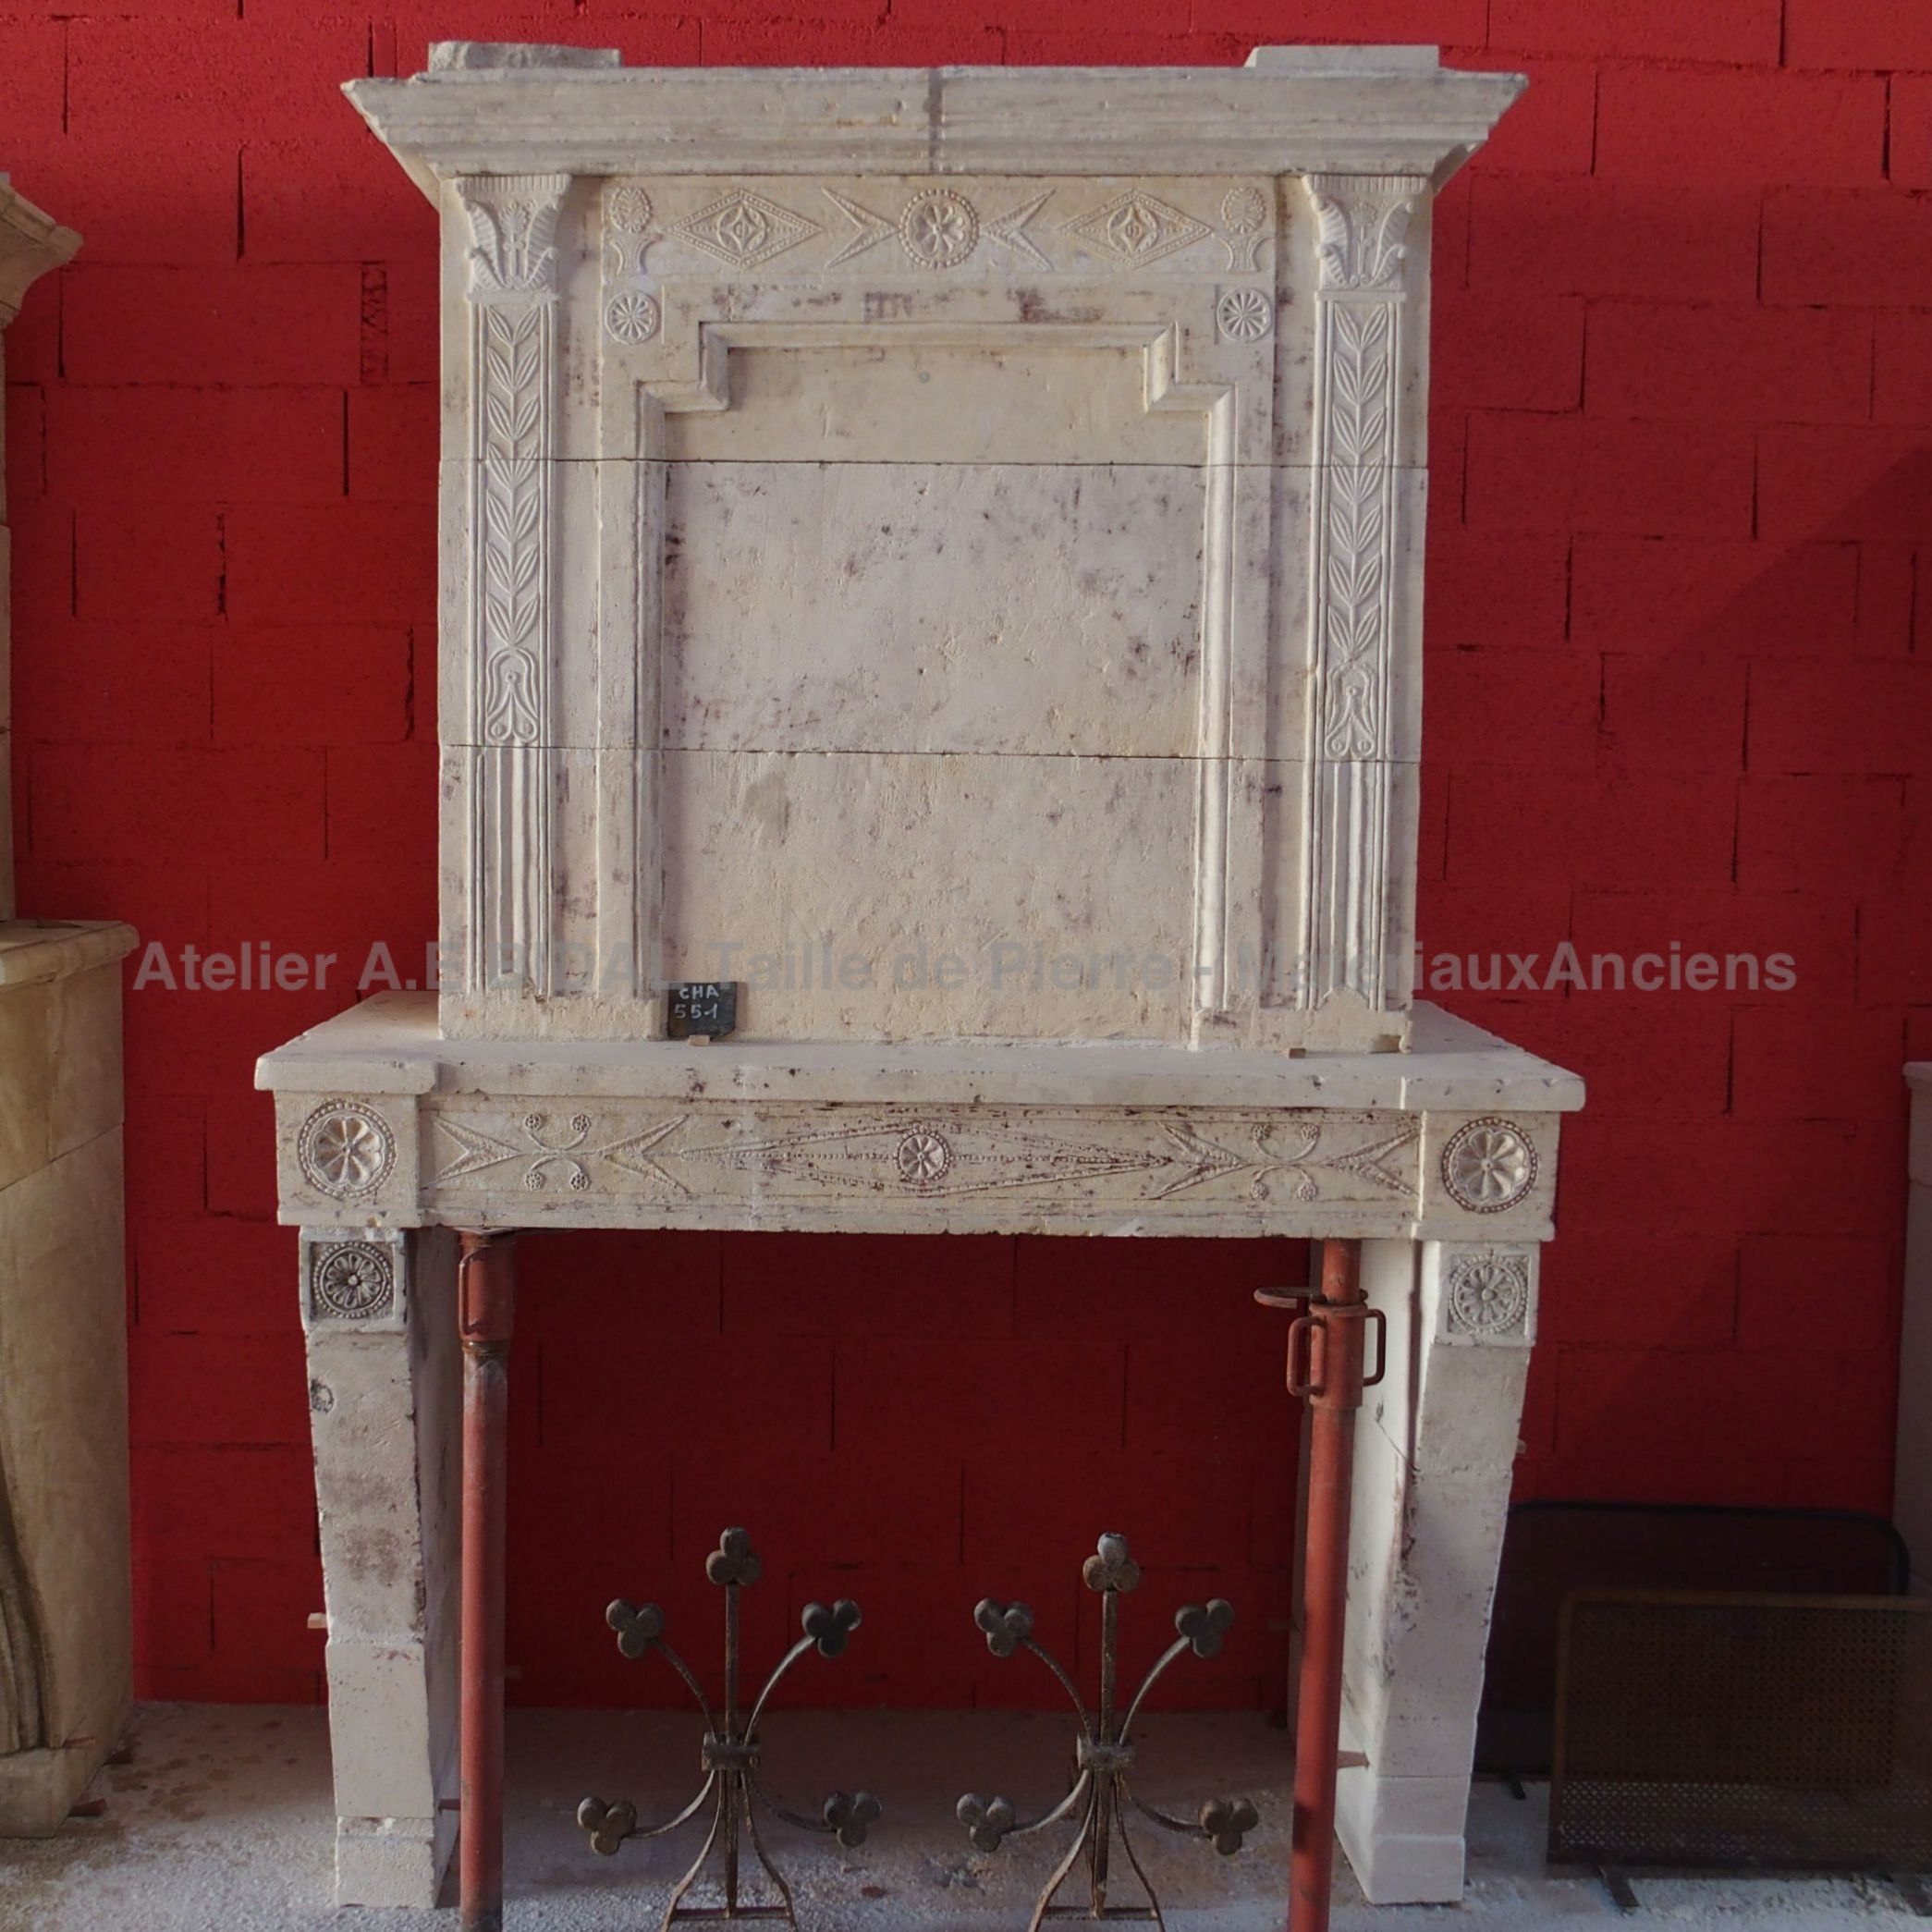 Louis XVI fireplace made of Richemont stone: an authentic French stone.